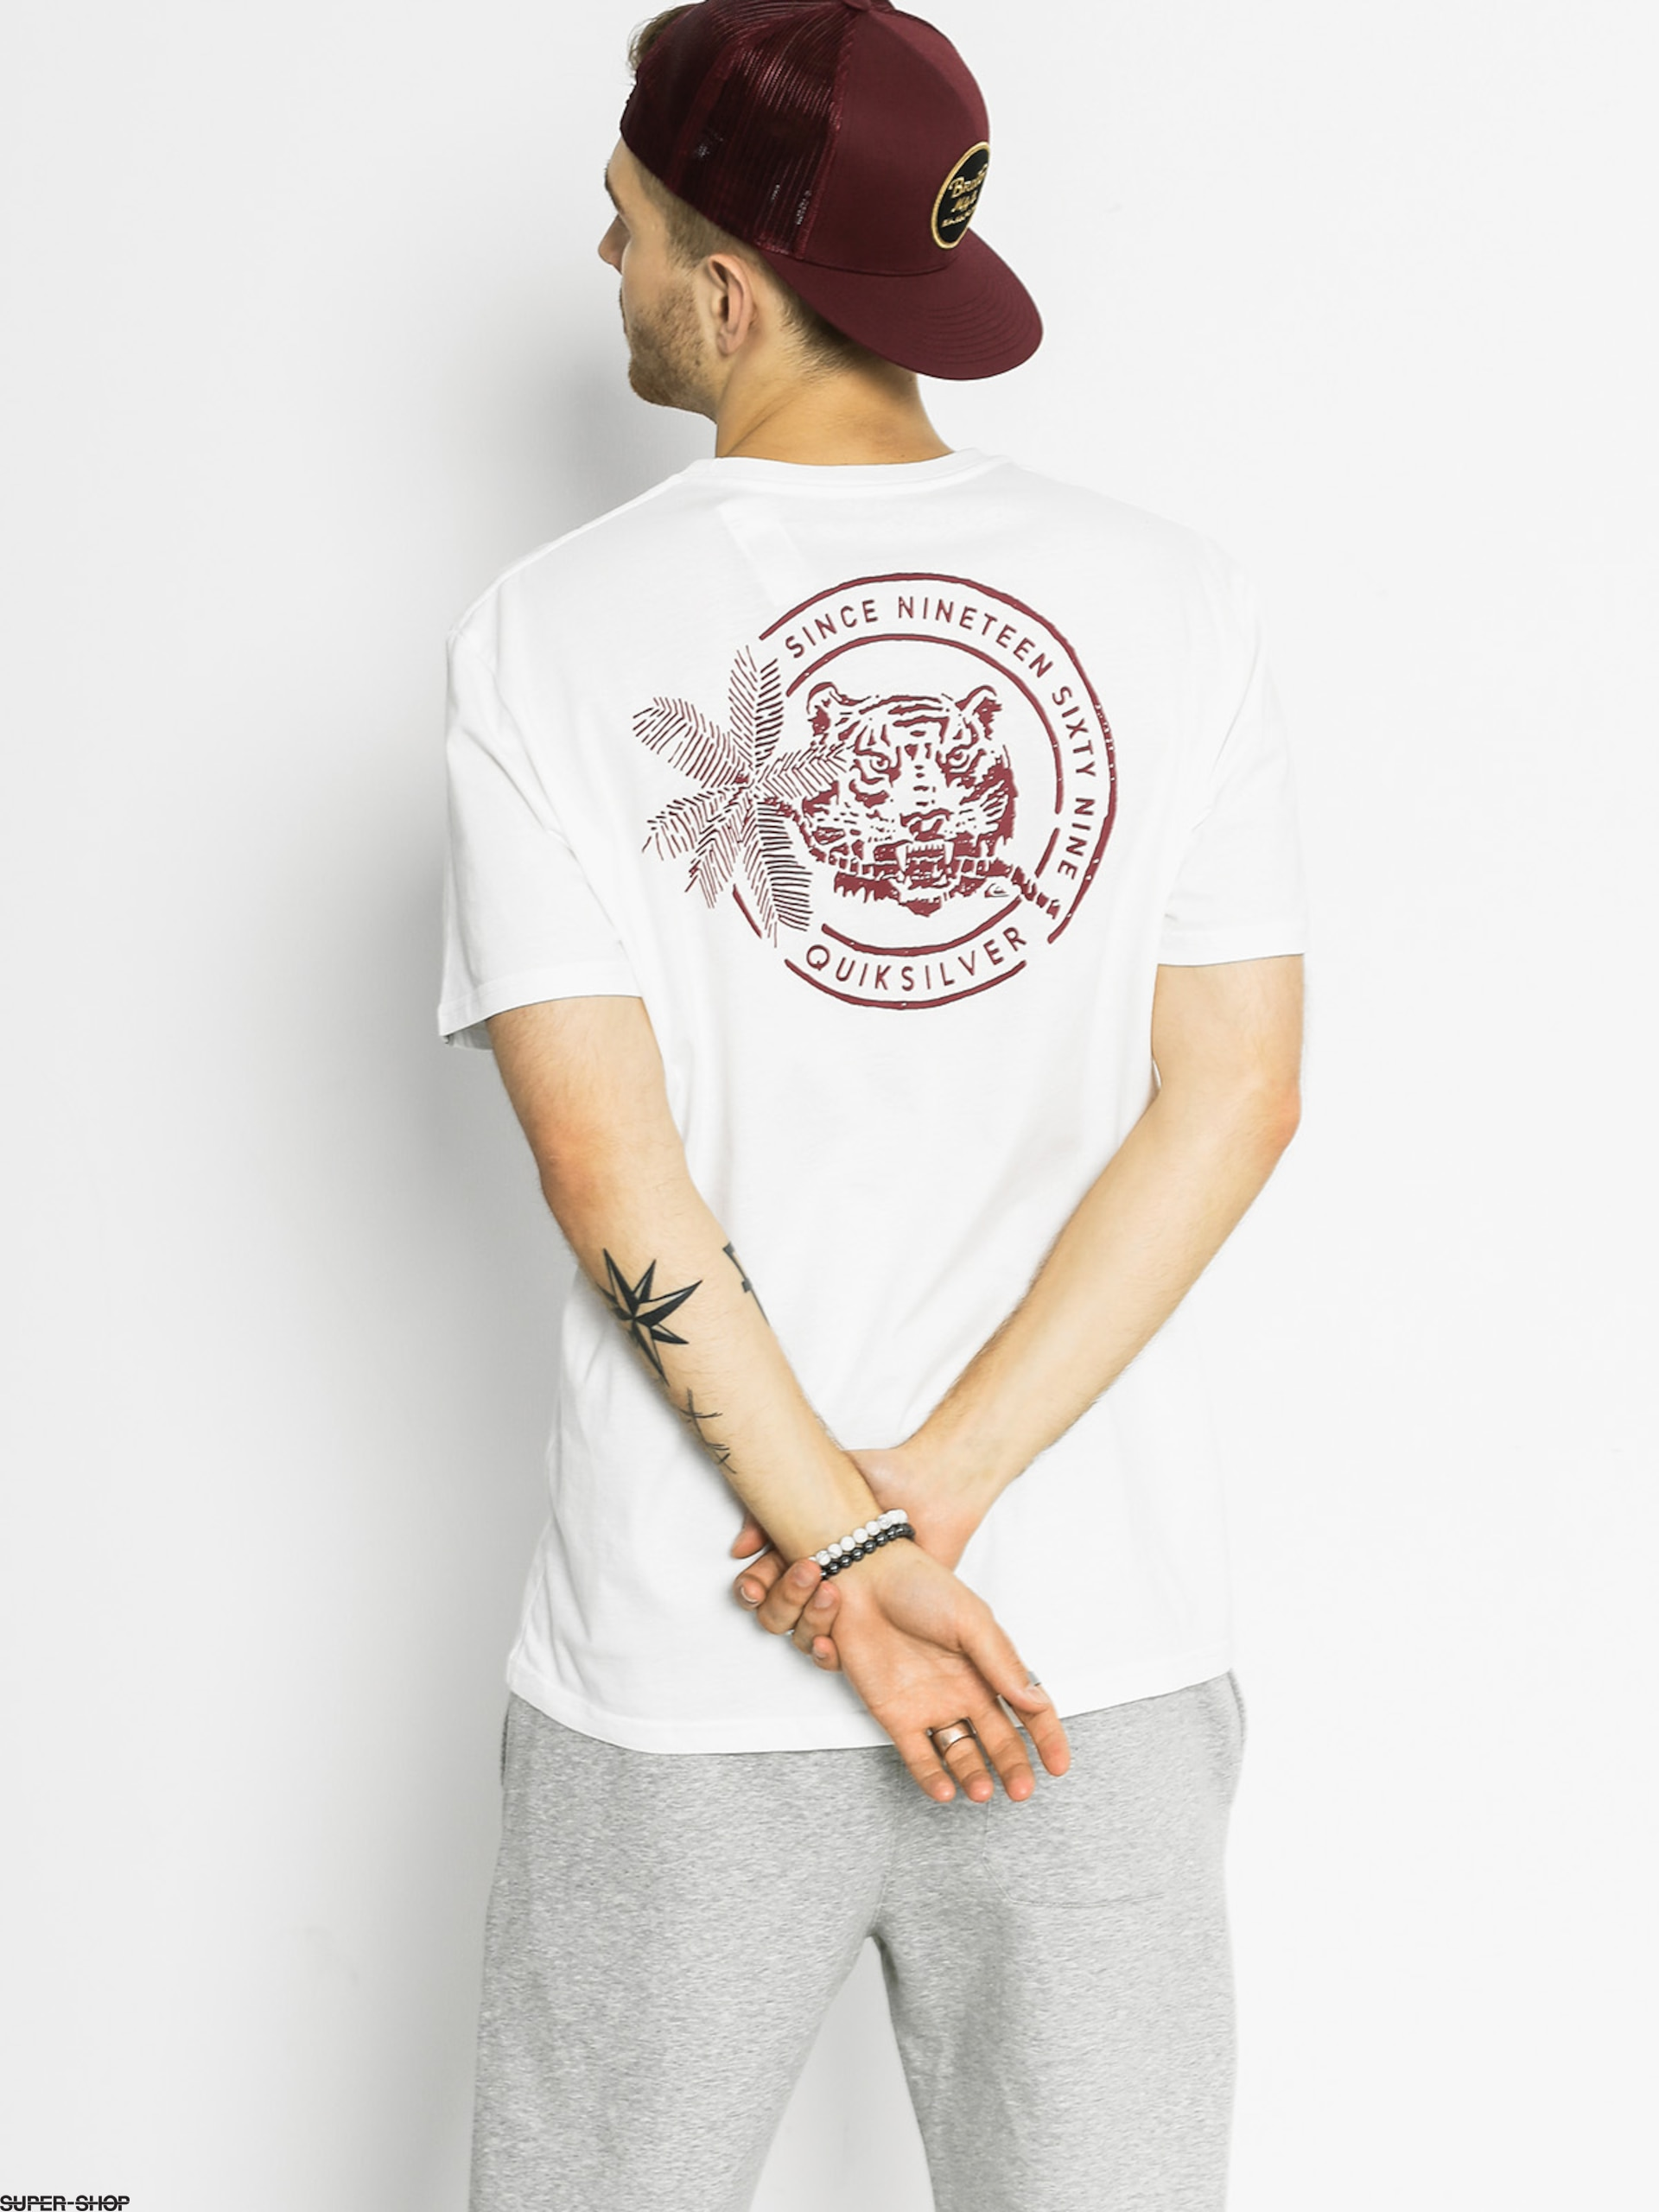 860098cad9 Quiksilver T-shirt Rad Tuger (white)